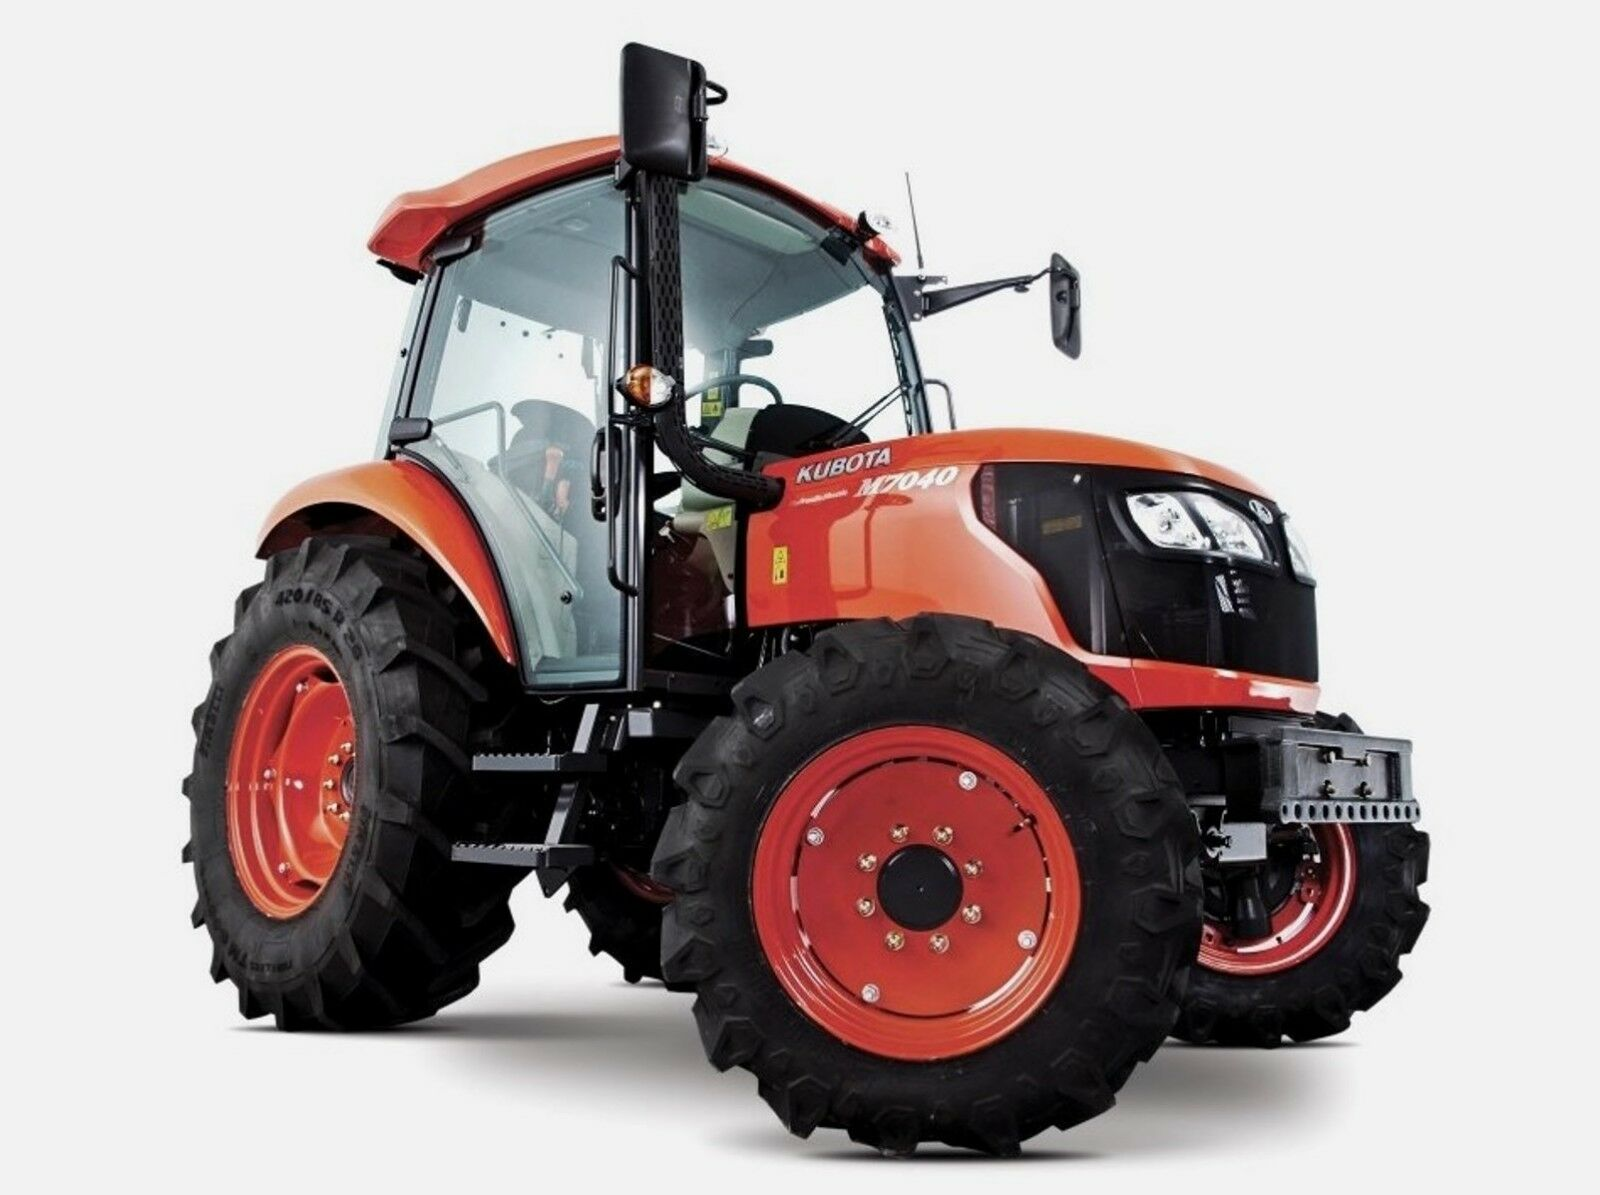 Kubota M7040 Wiring Diagram Tractors Workshop Manual Pdf Cd 750 Picclick Uk 1 Of 4free Shipping